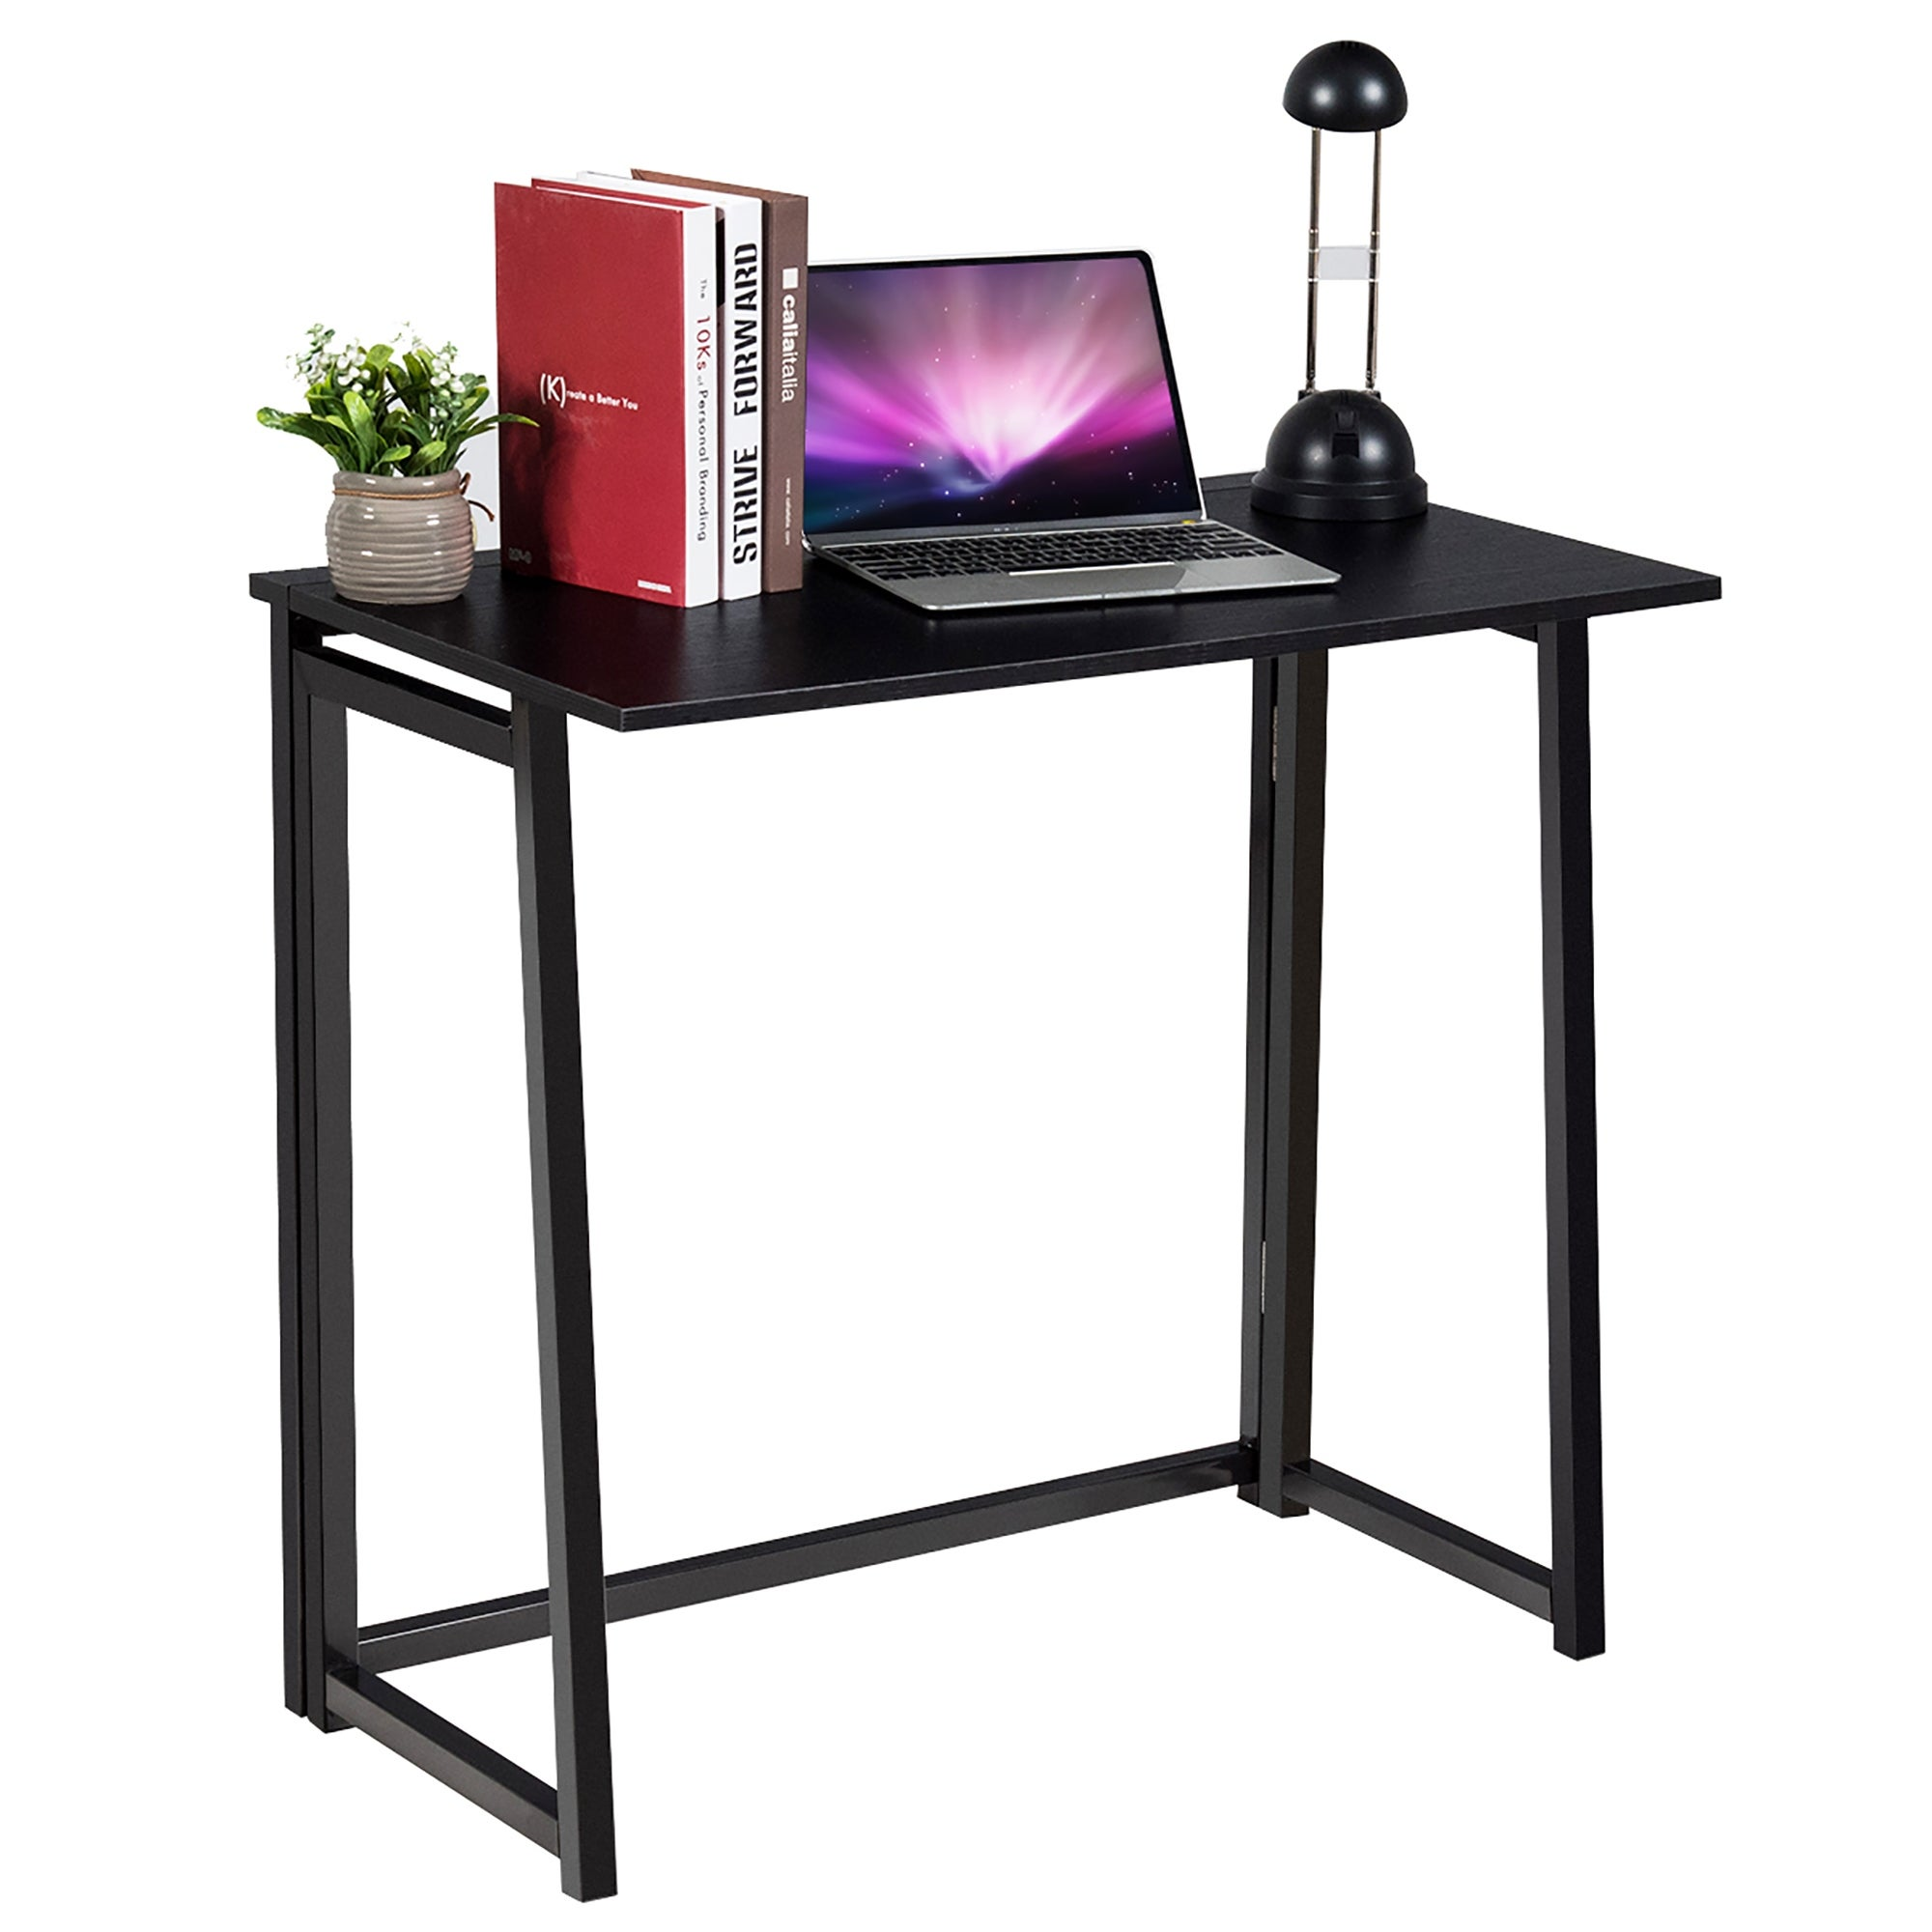 Folding Desk Home Office Laptop Table Writing Desk